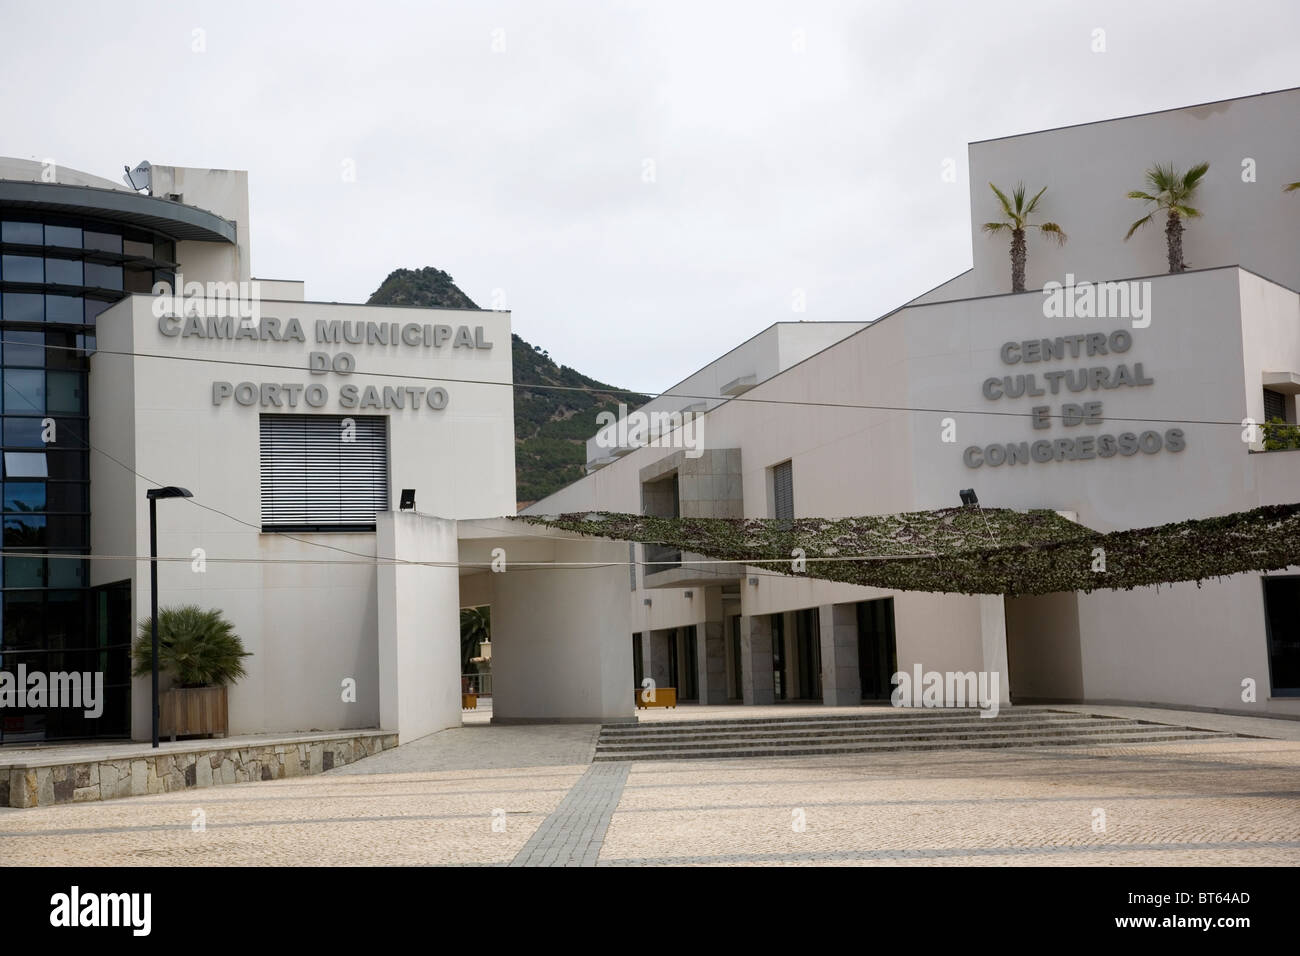 Town Hall of Porto Santo - Madeira - Stock Image